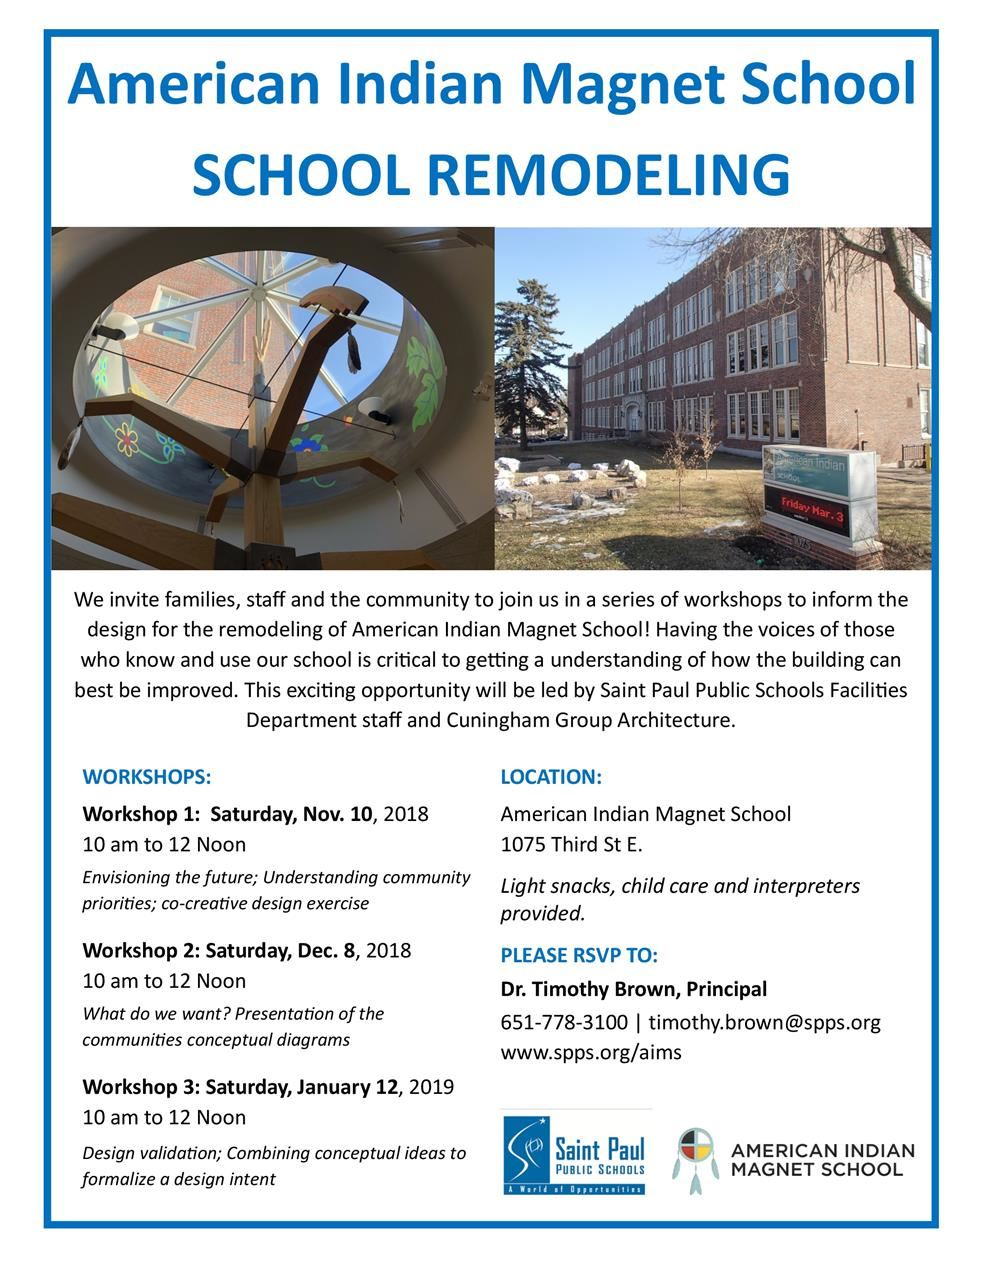 AIMS Remodel Workshops - You're Invited!